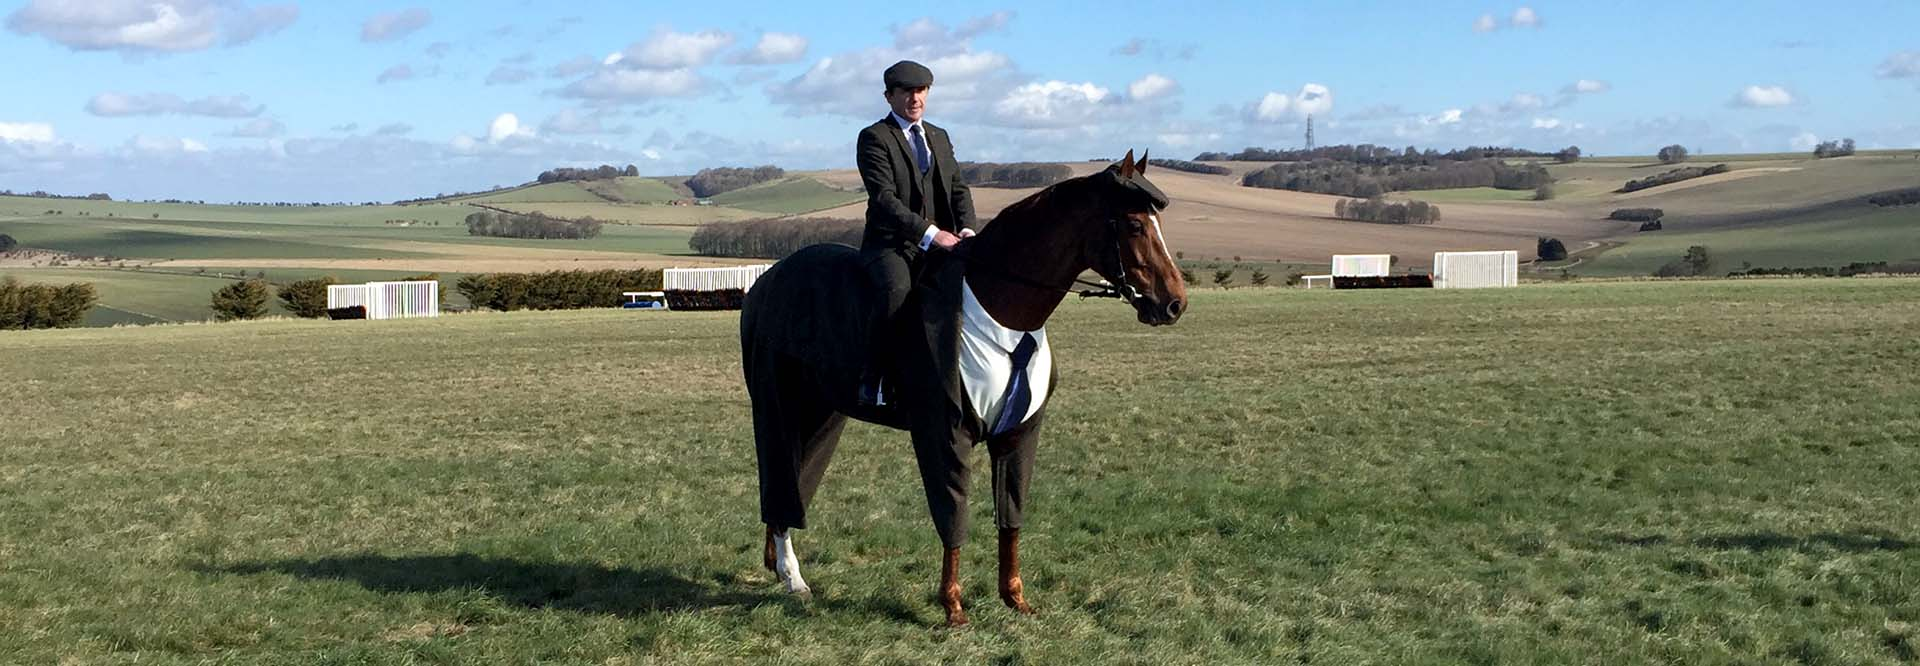 Horses Tweed Suit